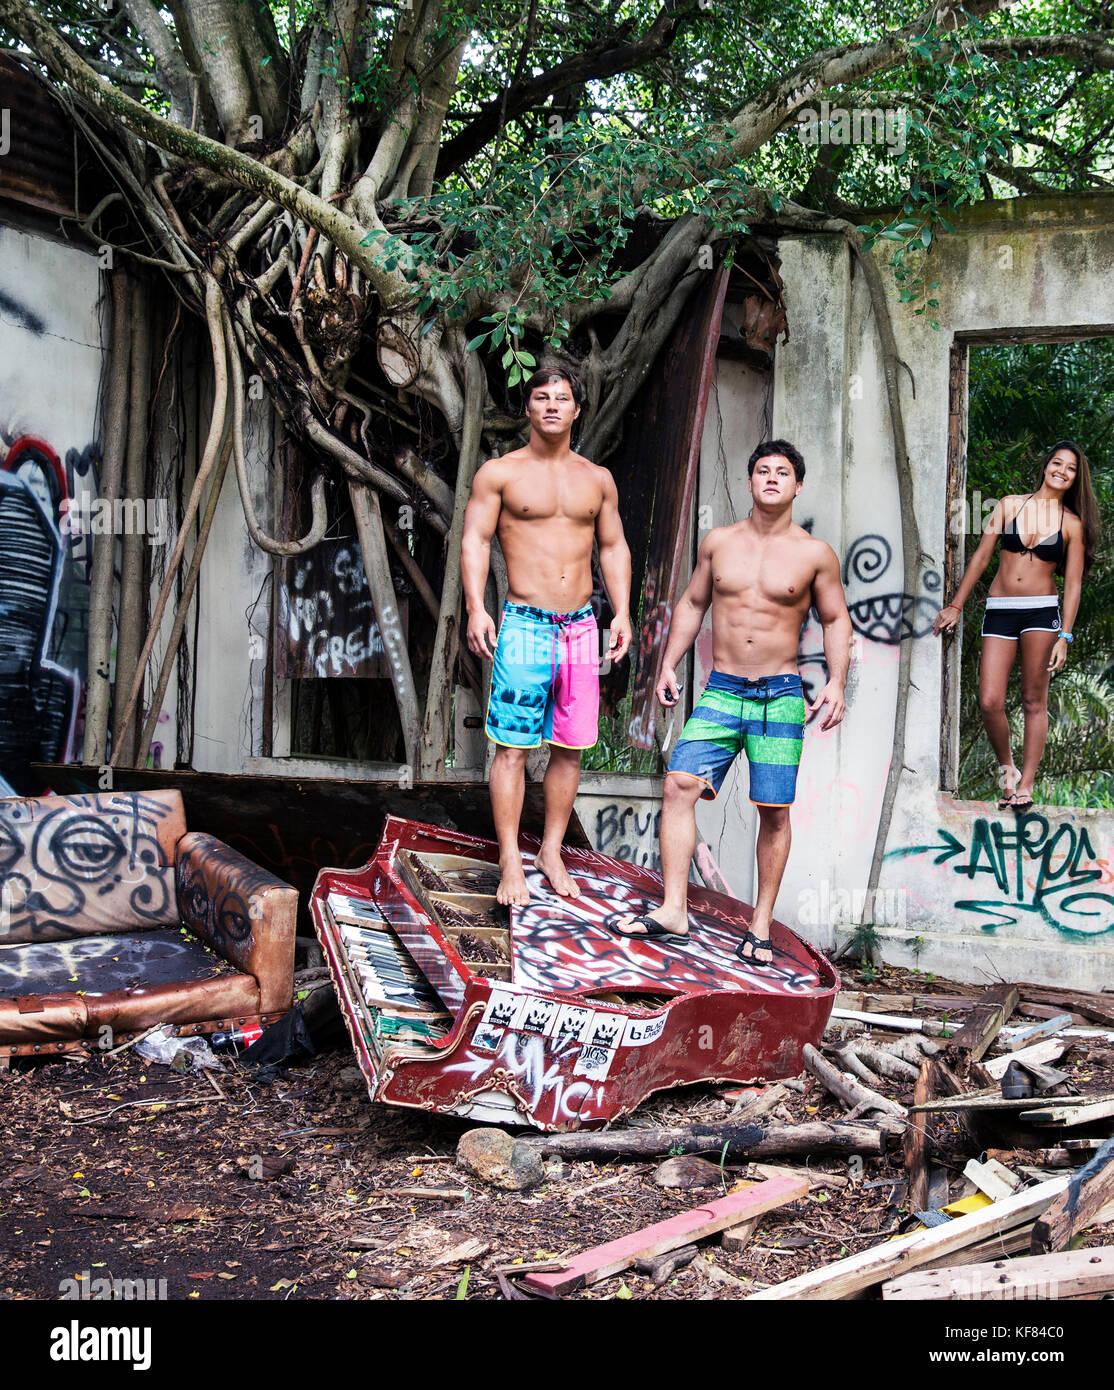 Abandoned Buildings In Oahu: Kyla Tipps Stock Photos & Kyla Tipps Stock Images